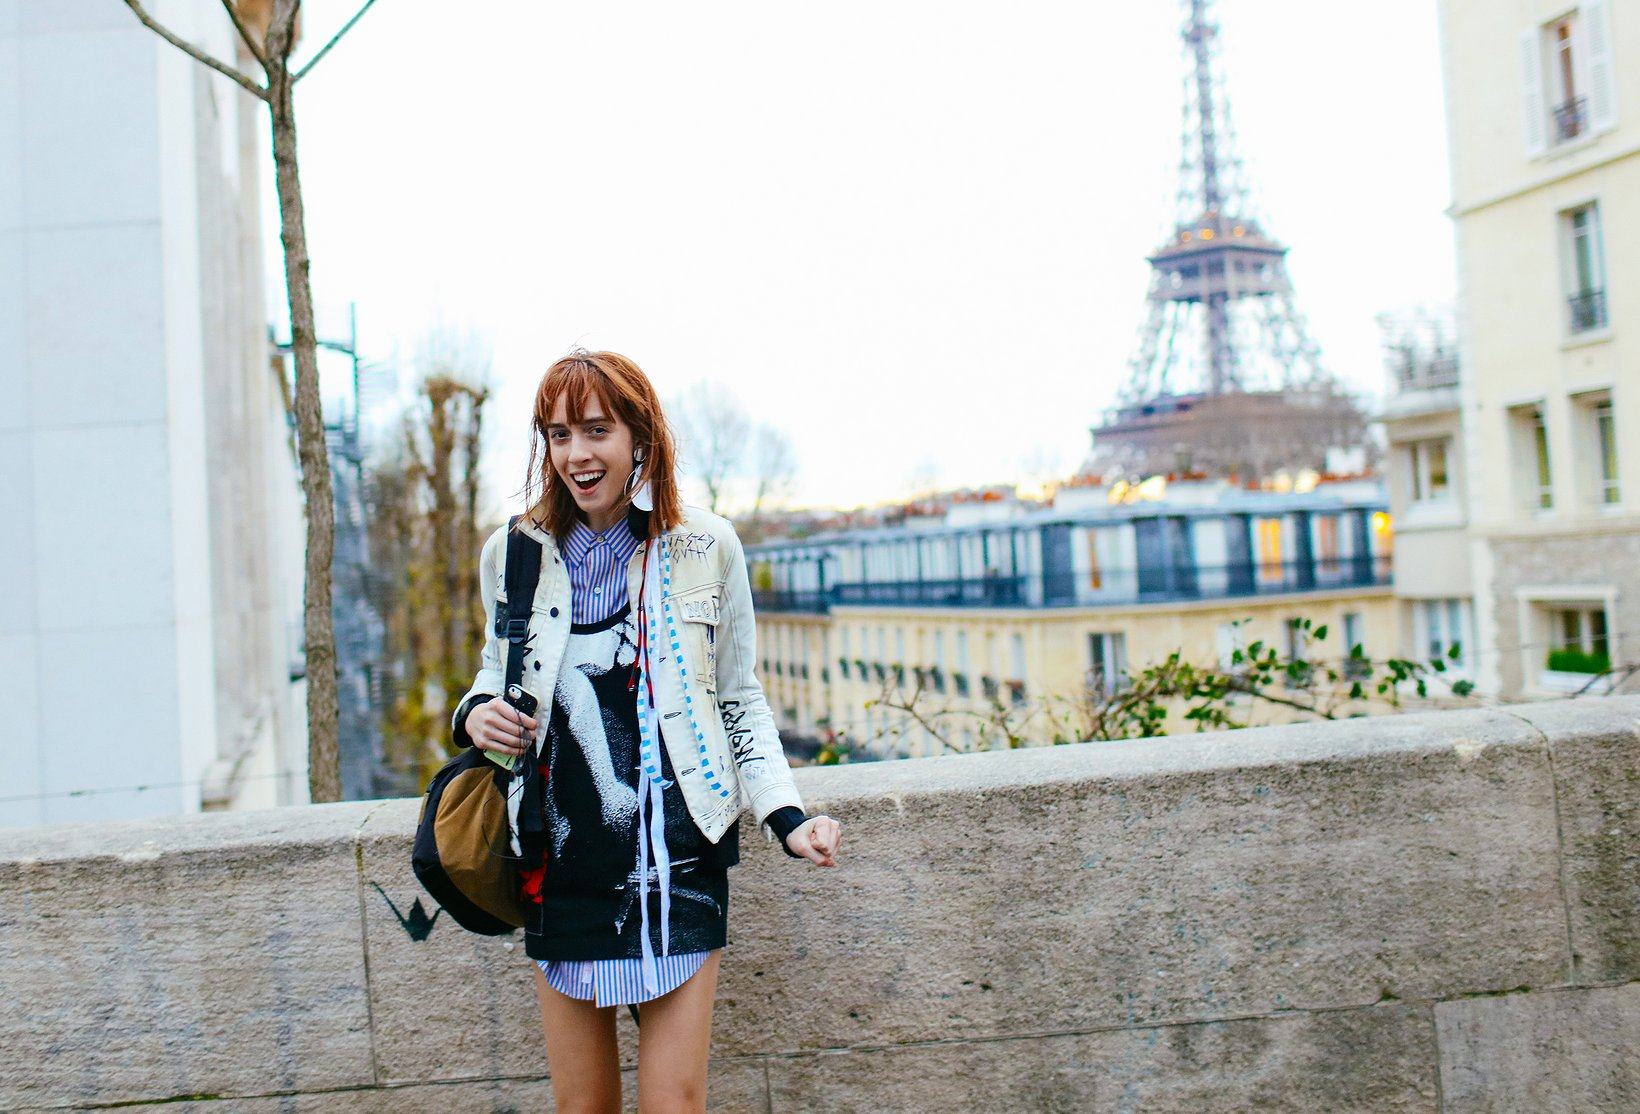 fav-looks-from-paris-fashionwonderer (30)